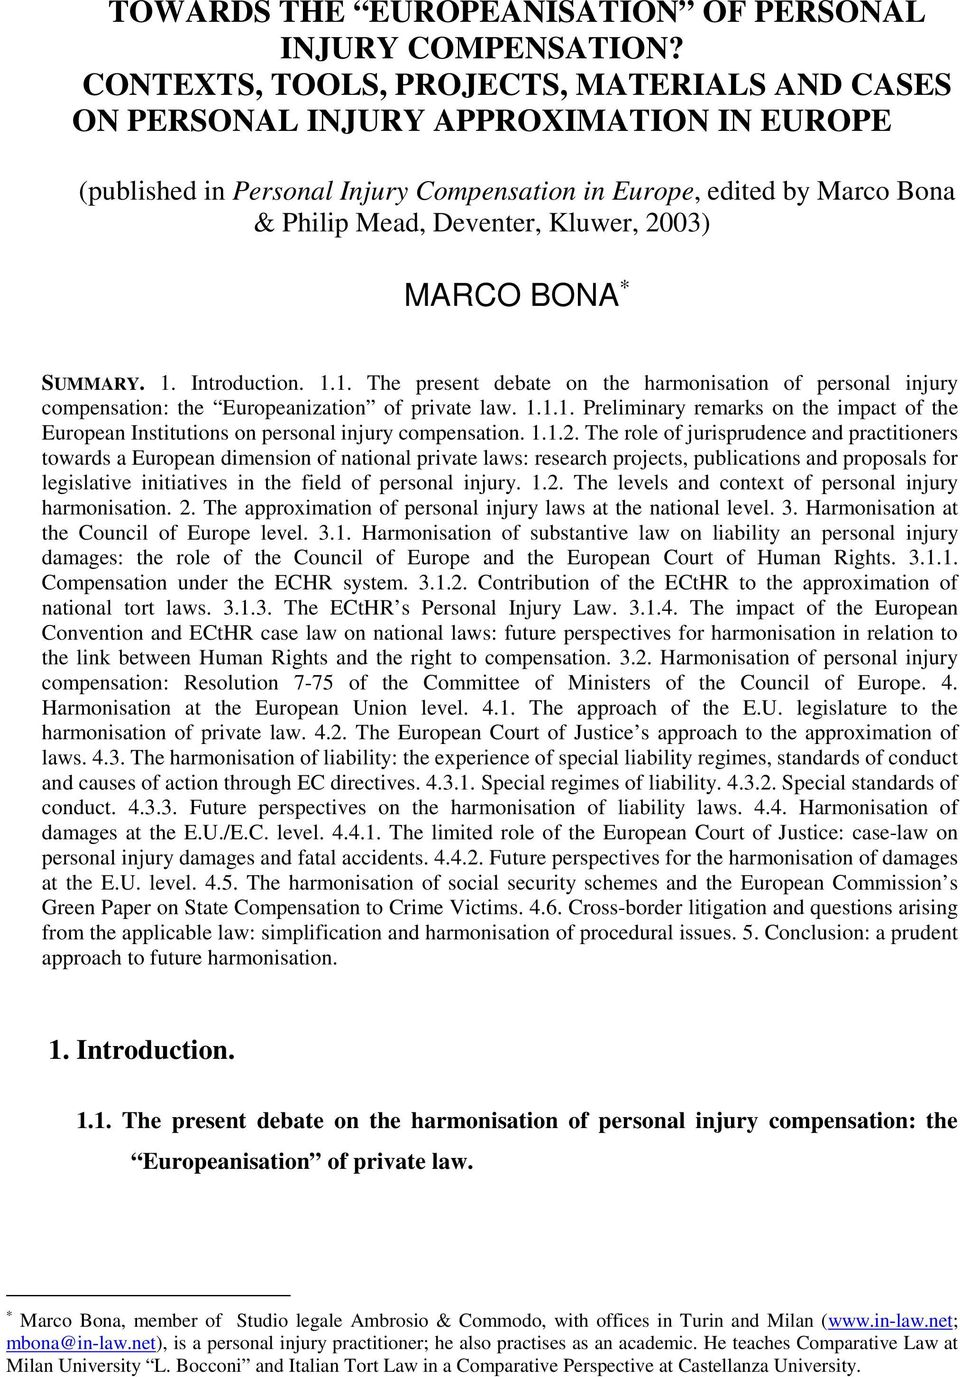 2003) MARCO BONA SUMMARY. 1. Introduction. 1.1. The present debate on the harmonisation of personal injury compensation: the Europeanization of private law. 1.1.1. Preliminary remarks on the impact of the European Institutions on personal injury compensation.